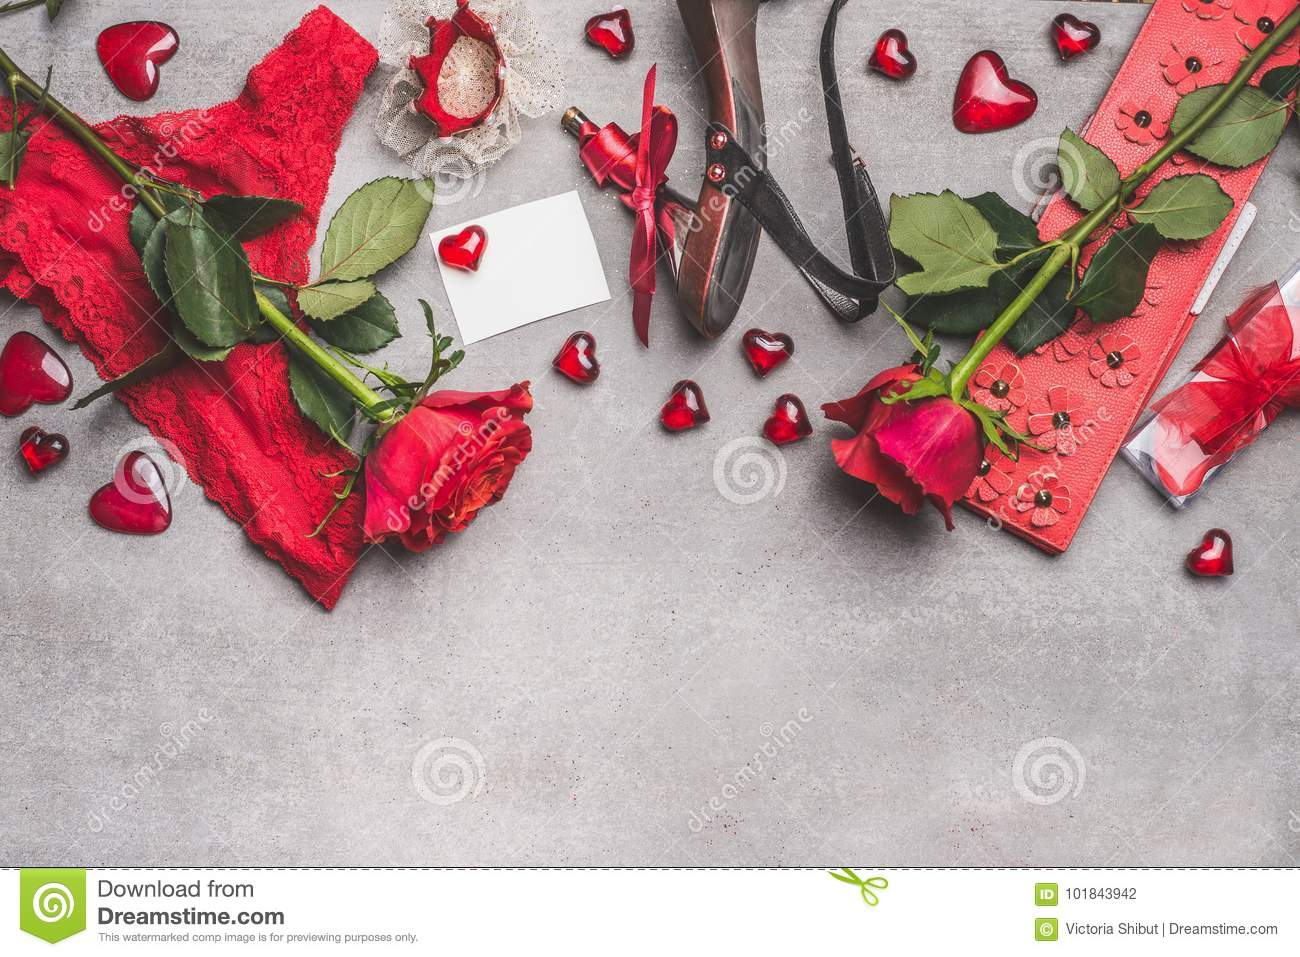 Female Valentines Day Or Dating Accessories In Red Color: Shoes ...